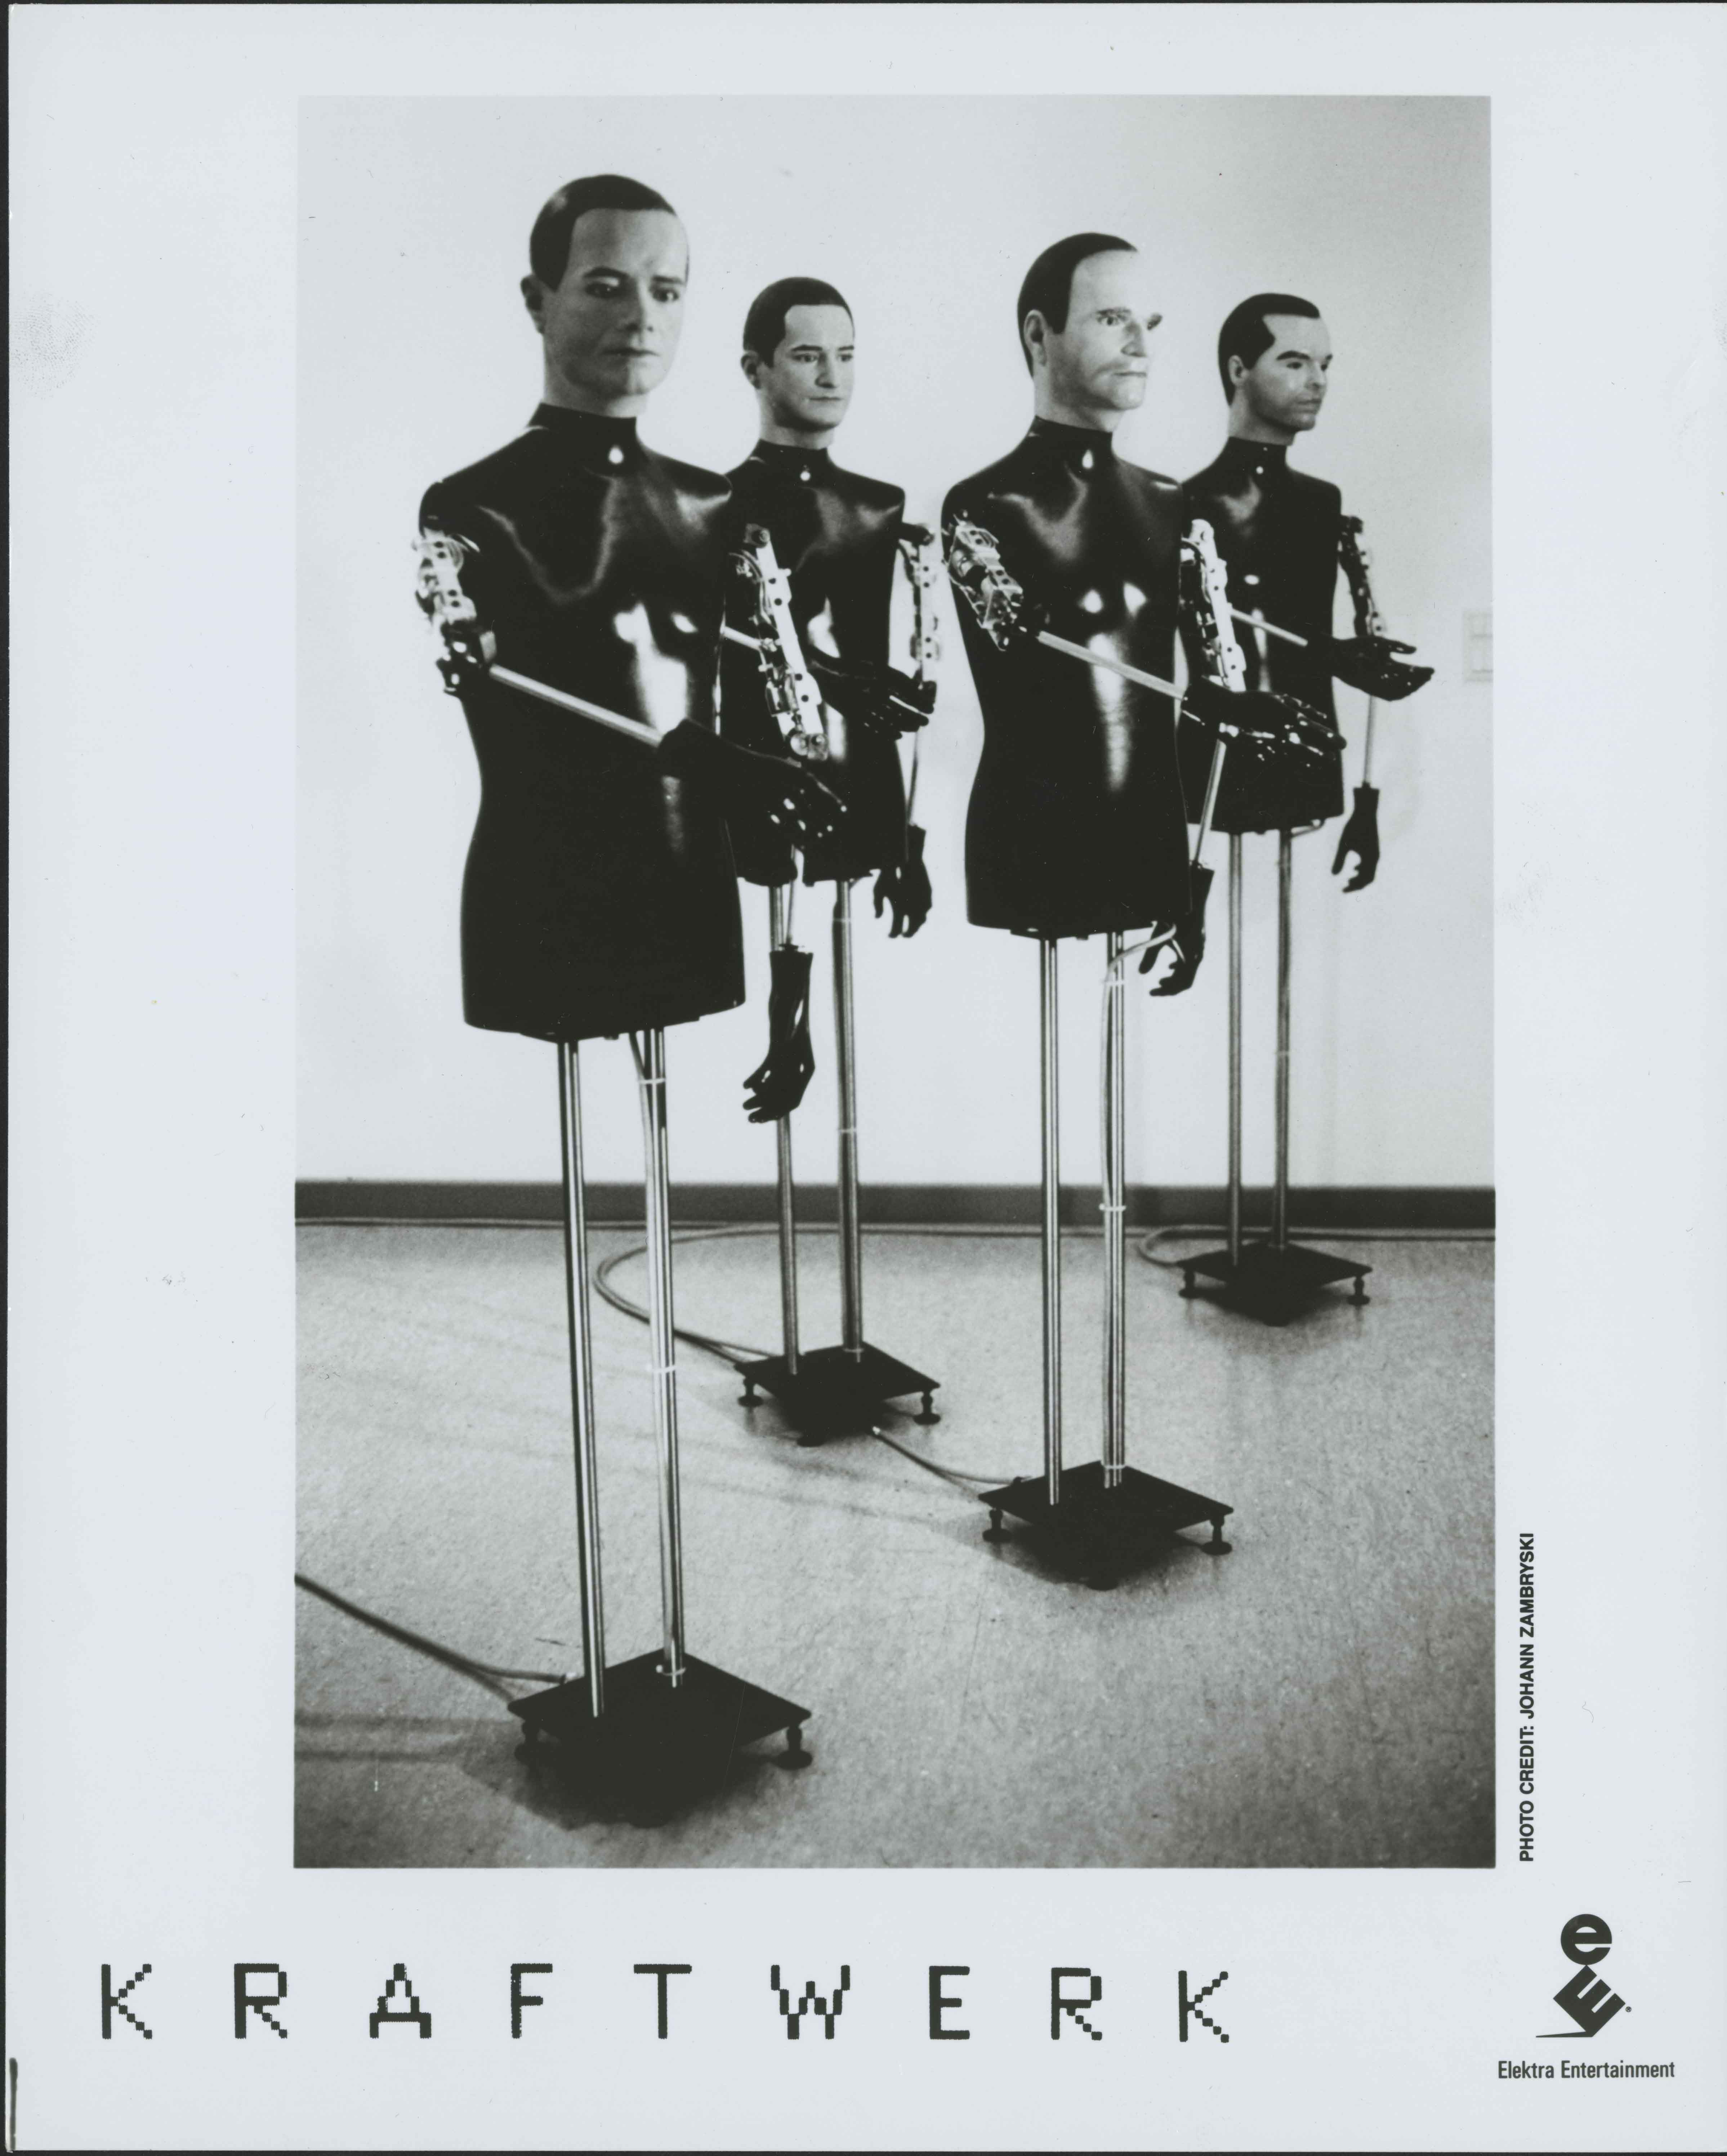 kraftwerk promo photo